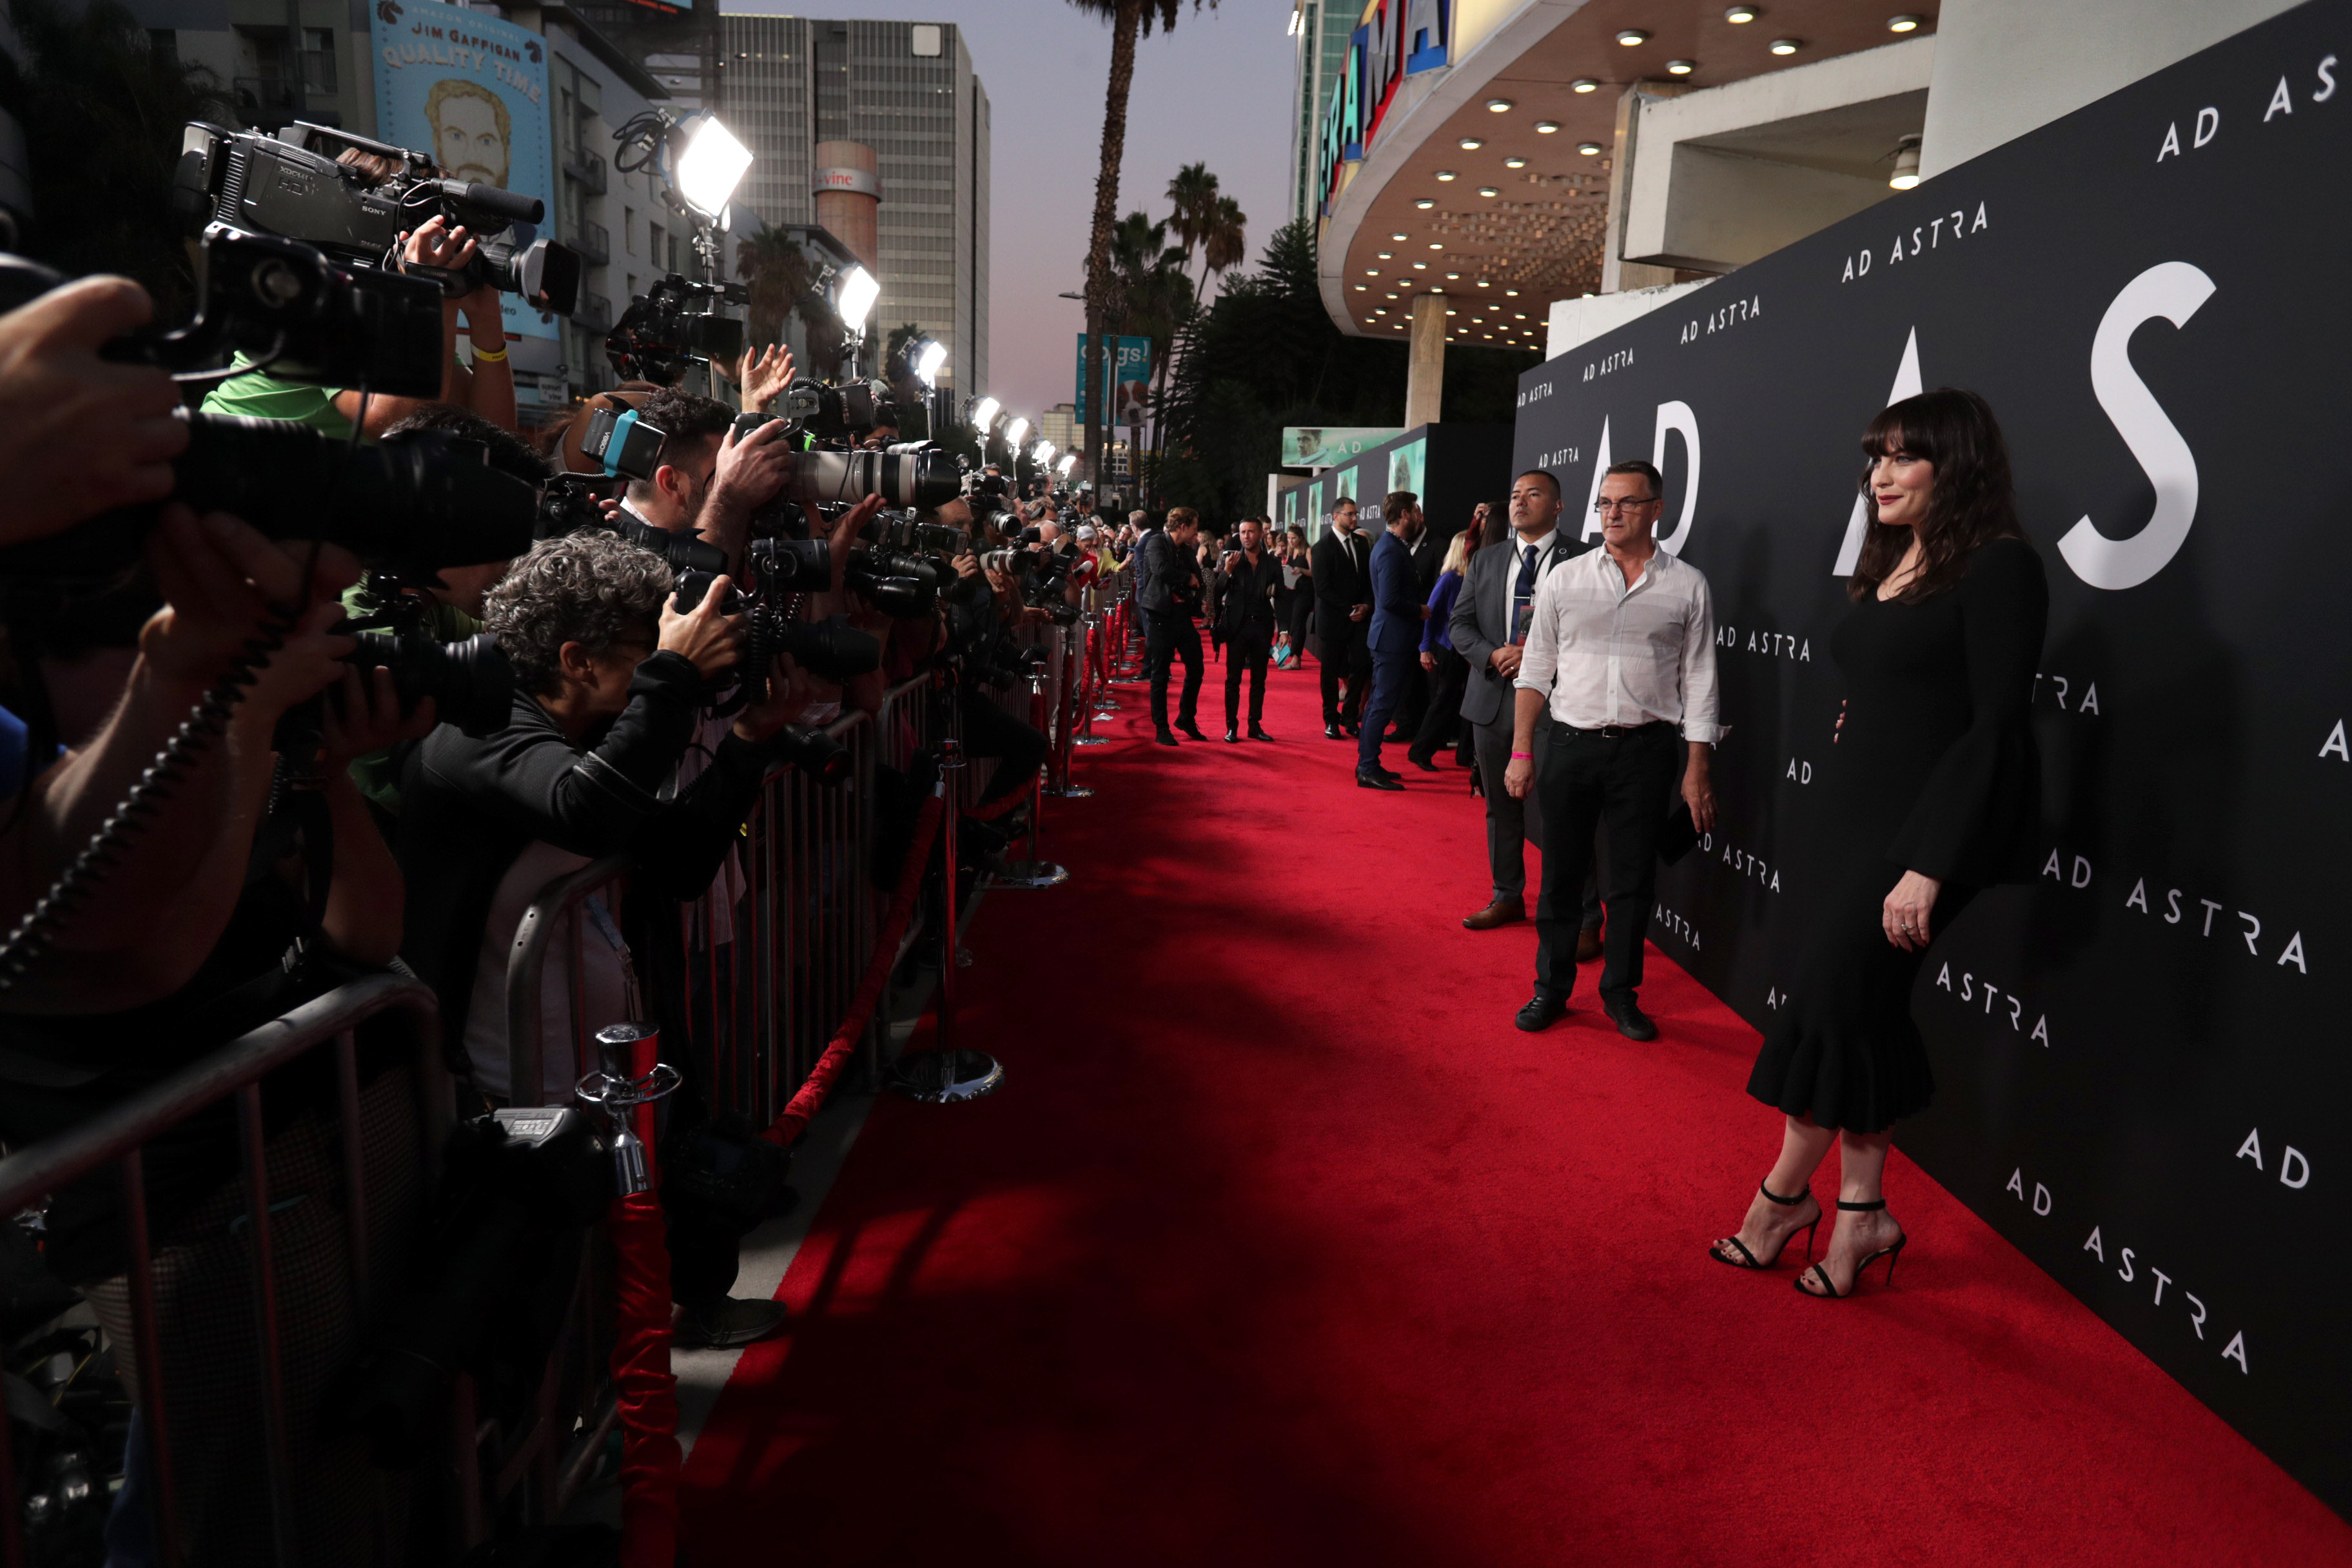 Photographers and media arrive at Ad Astra Hollywood premiere